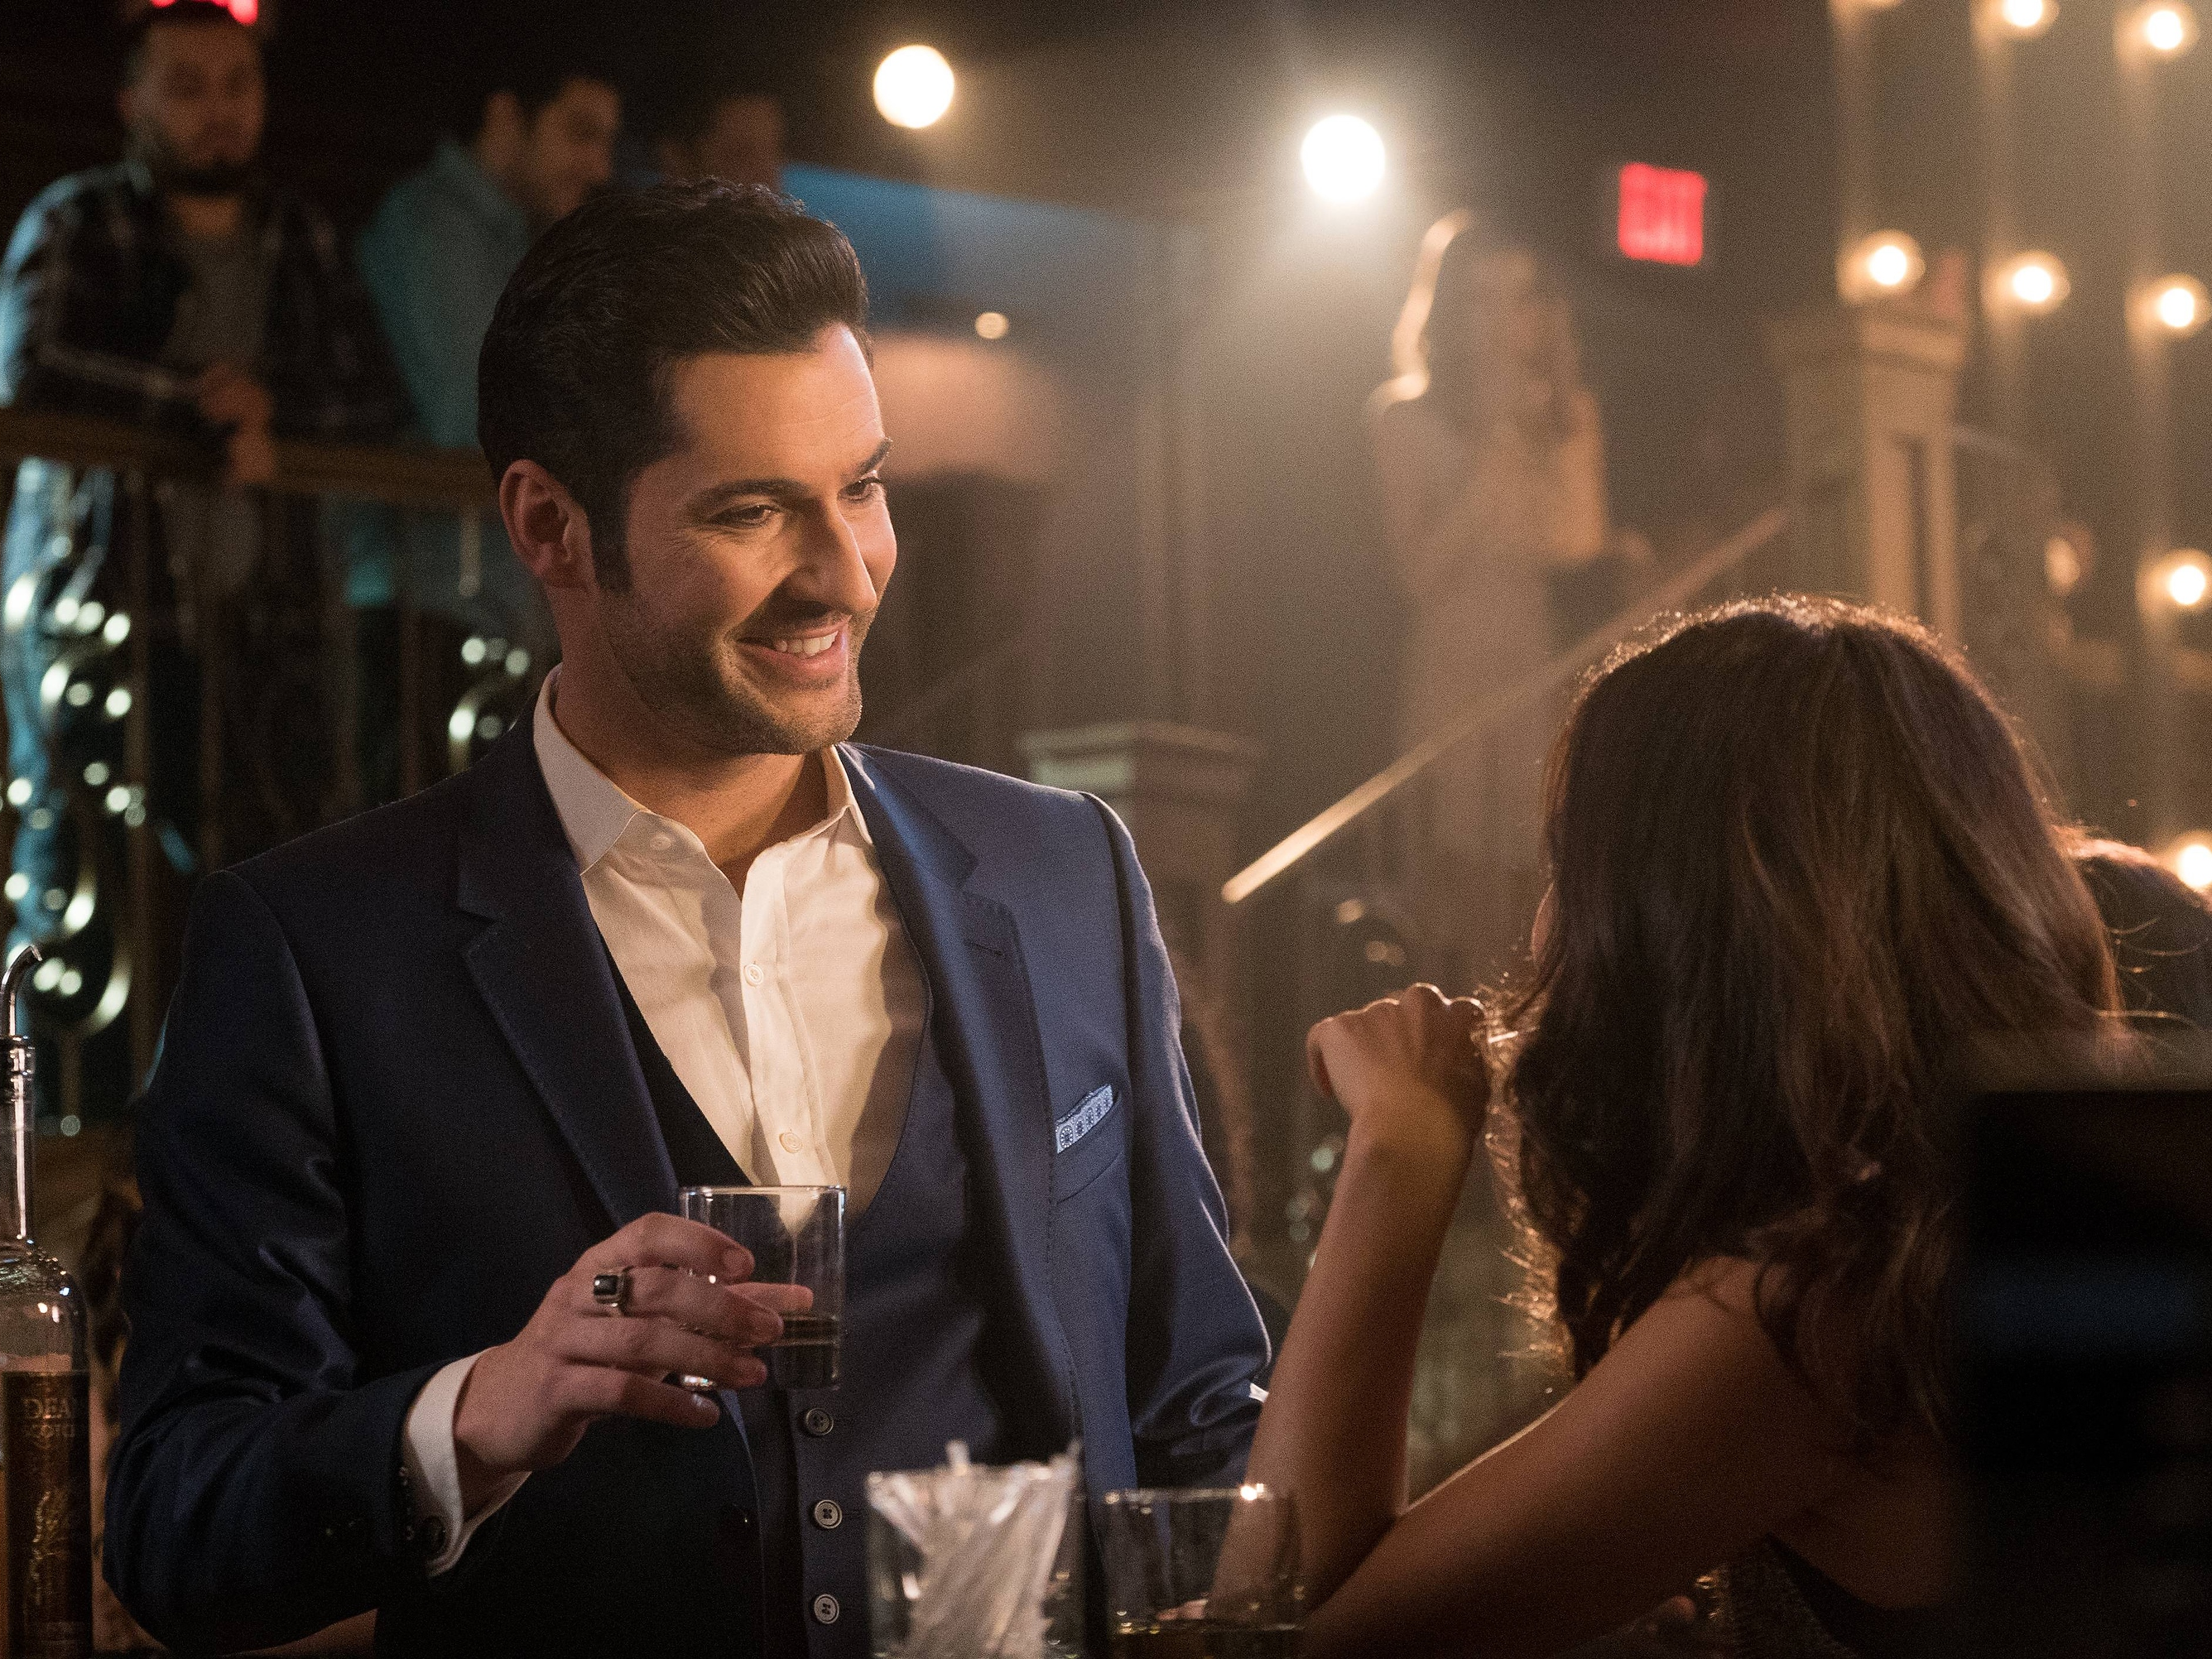 The TV characters cheaters fantasize about the most, according to Ashley Madison data